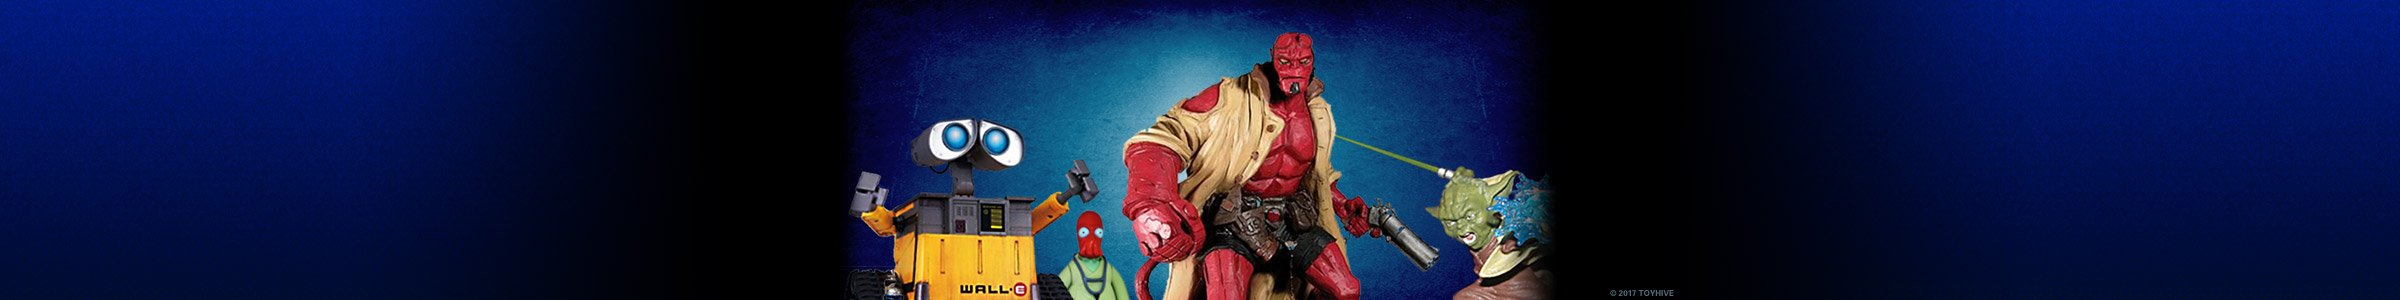 ToyHive: Hellboy Zoidberg and Wall-E